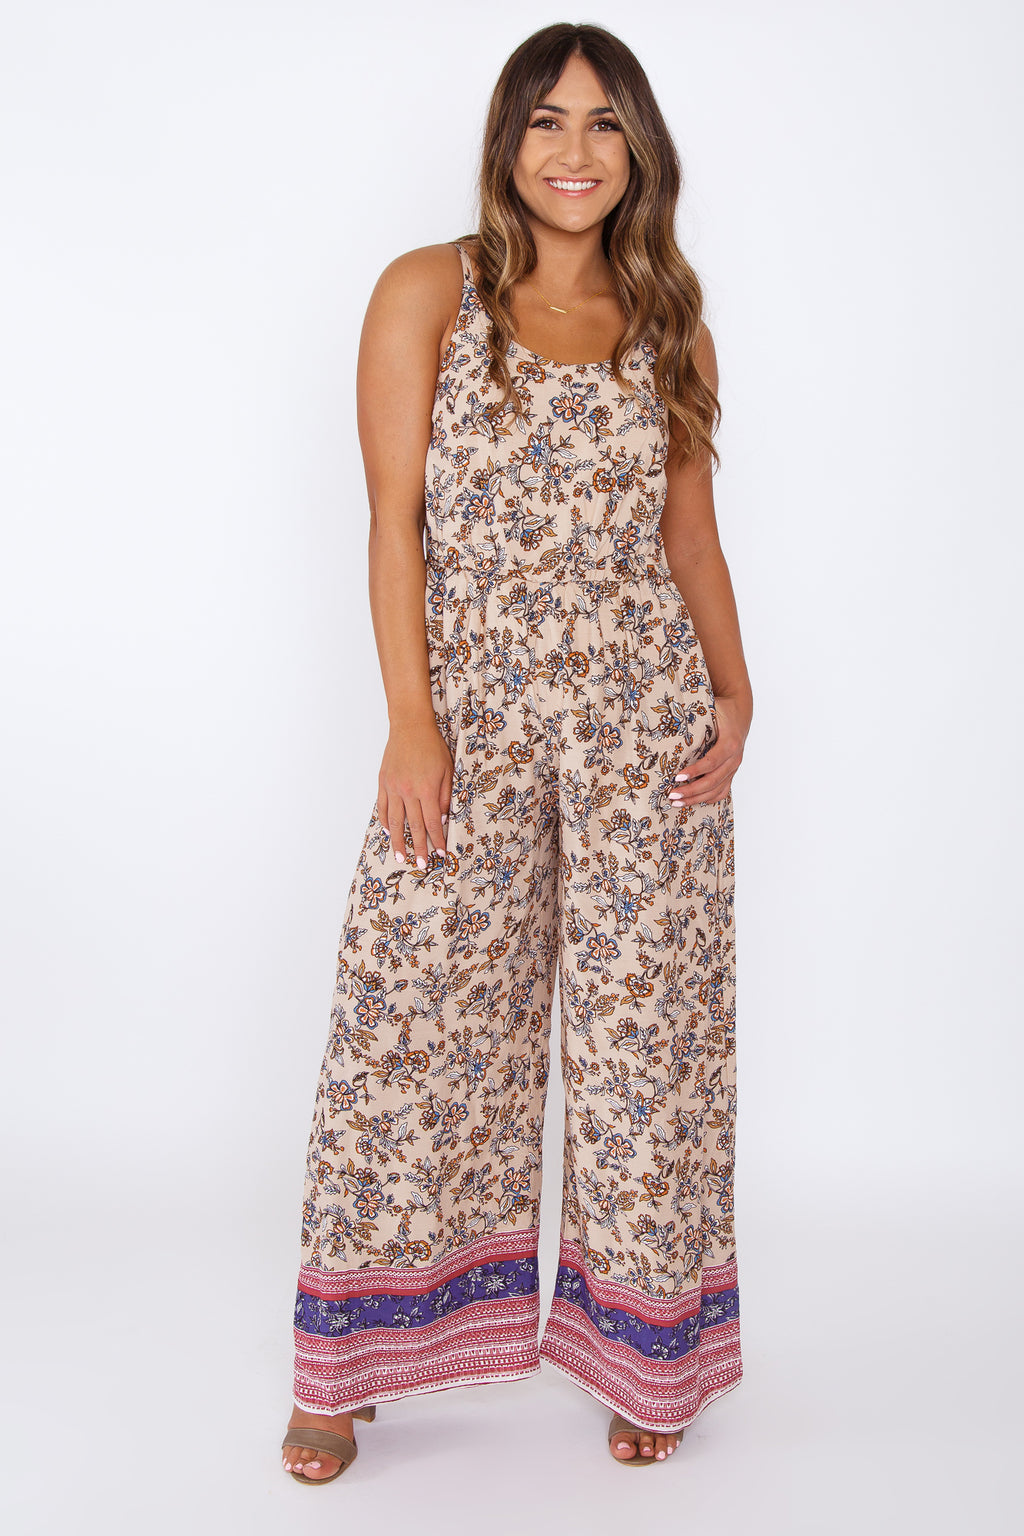 32a189b1d1a51 Macys Womens Jumpsuits And Rompers